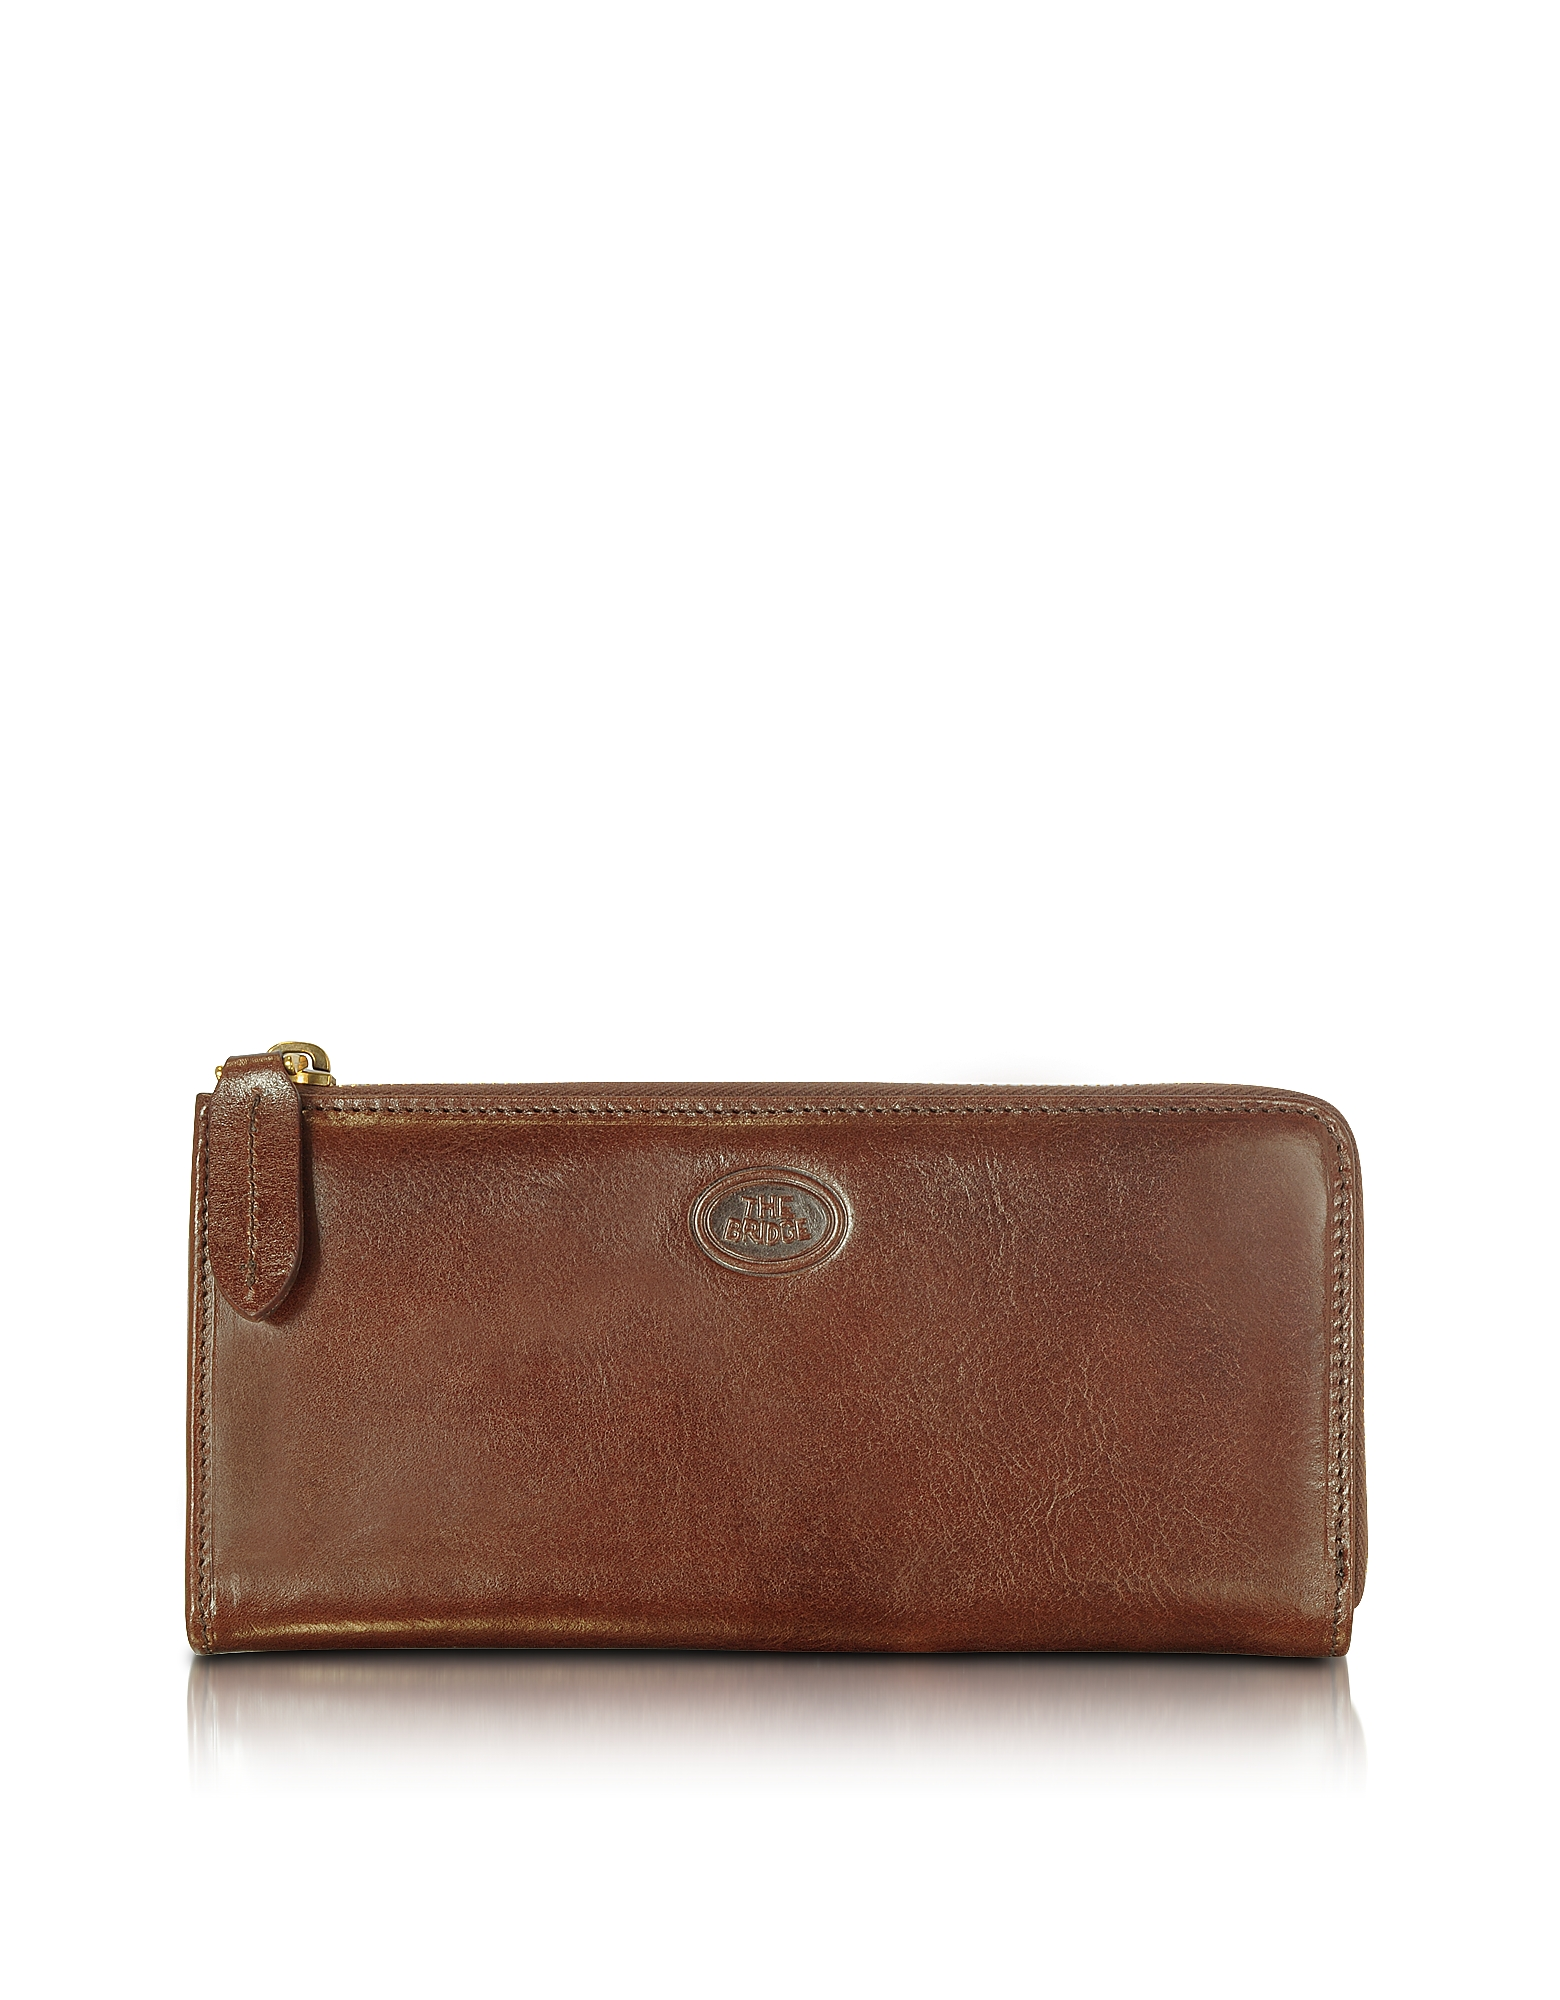 The Bridge Handbags, Story Donna Brown Leather Zip Wallet